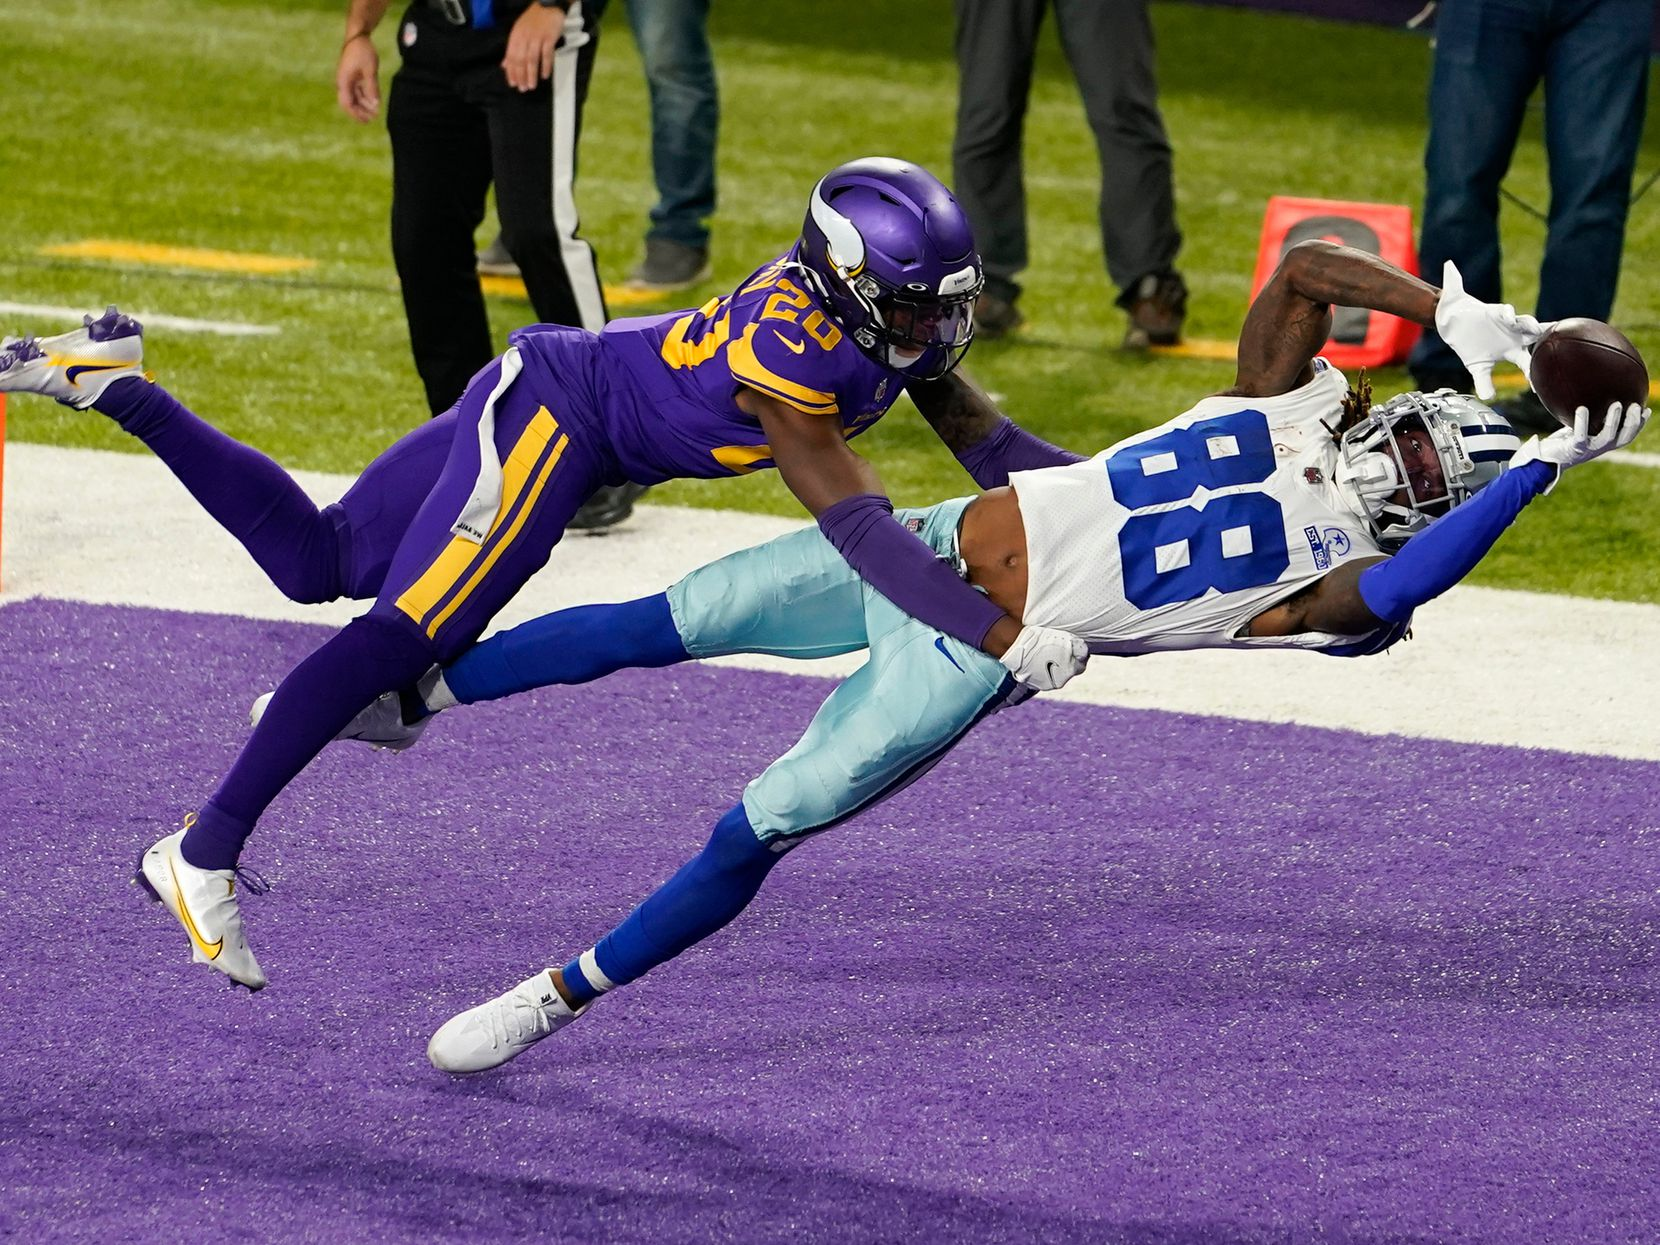 Dallas Cowboys wide receiver CeeDee Lamb catches a 4-yard touchdown pass ahead of Minnesota Vikings cornerback Jeff Gladney, left, during the first half of an NFL football game in Minneapolis on Nov. 22, 2020.